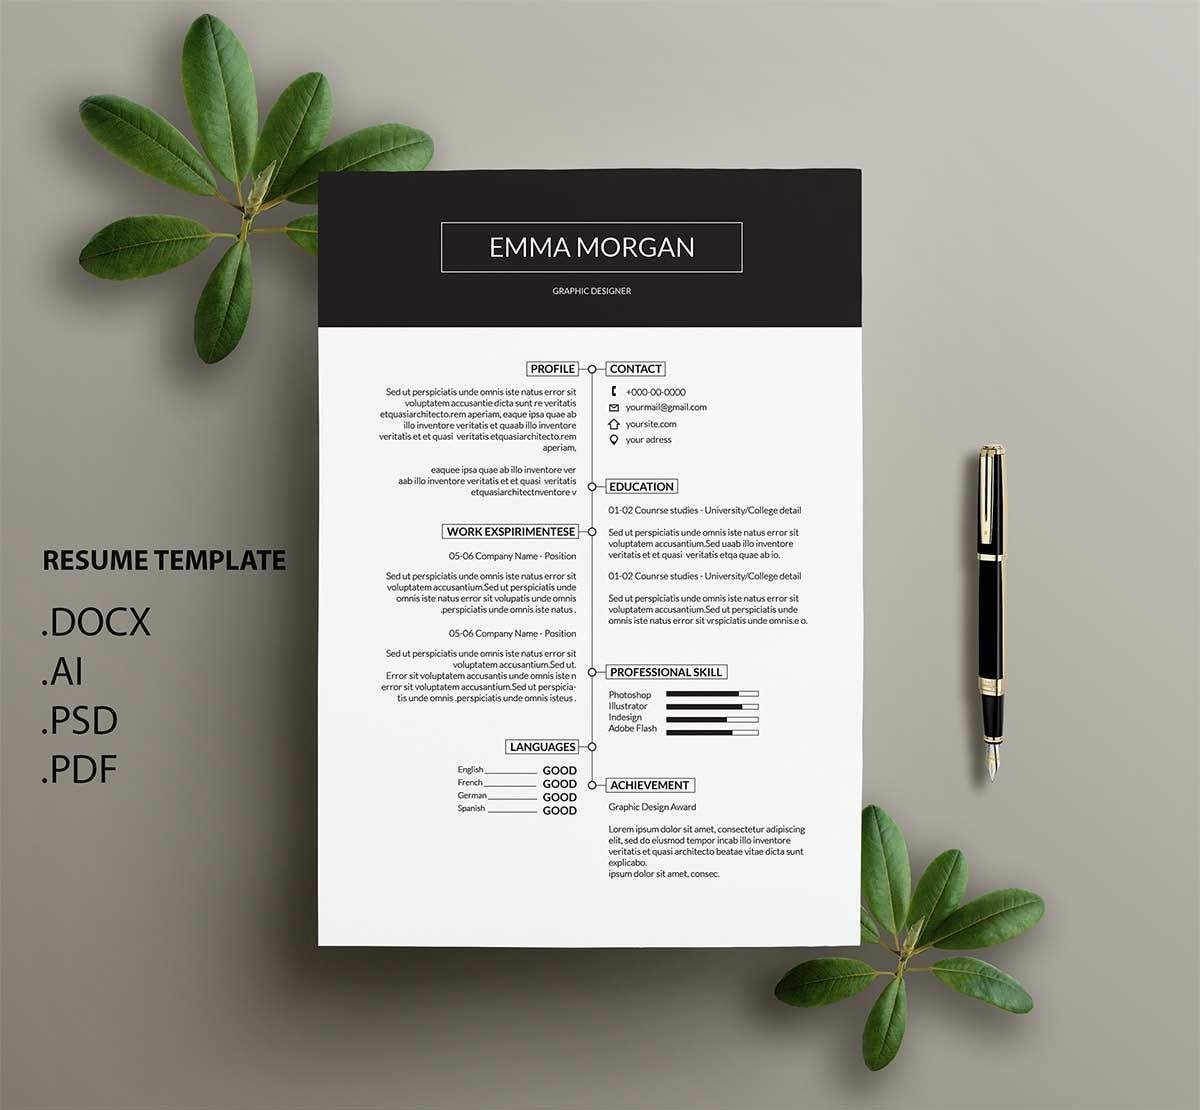 great resume template with timeline and big header